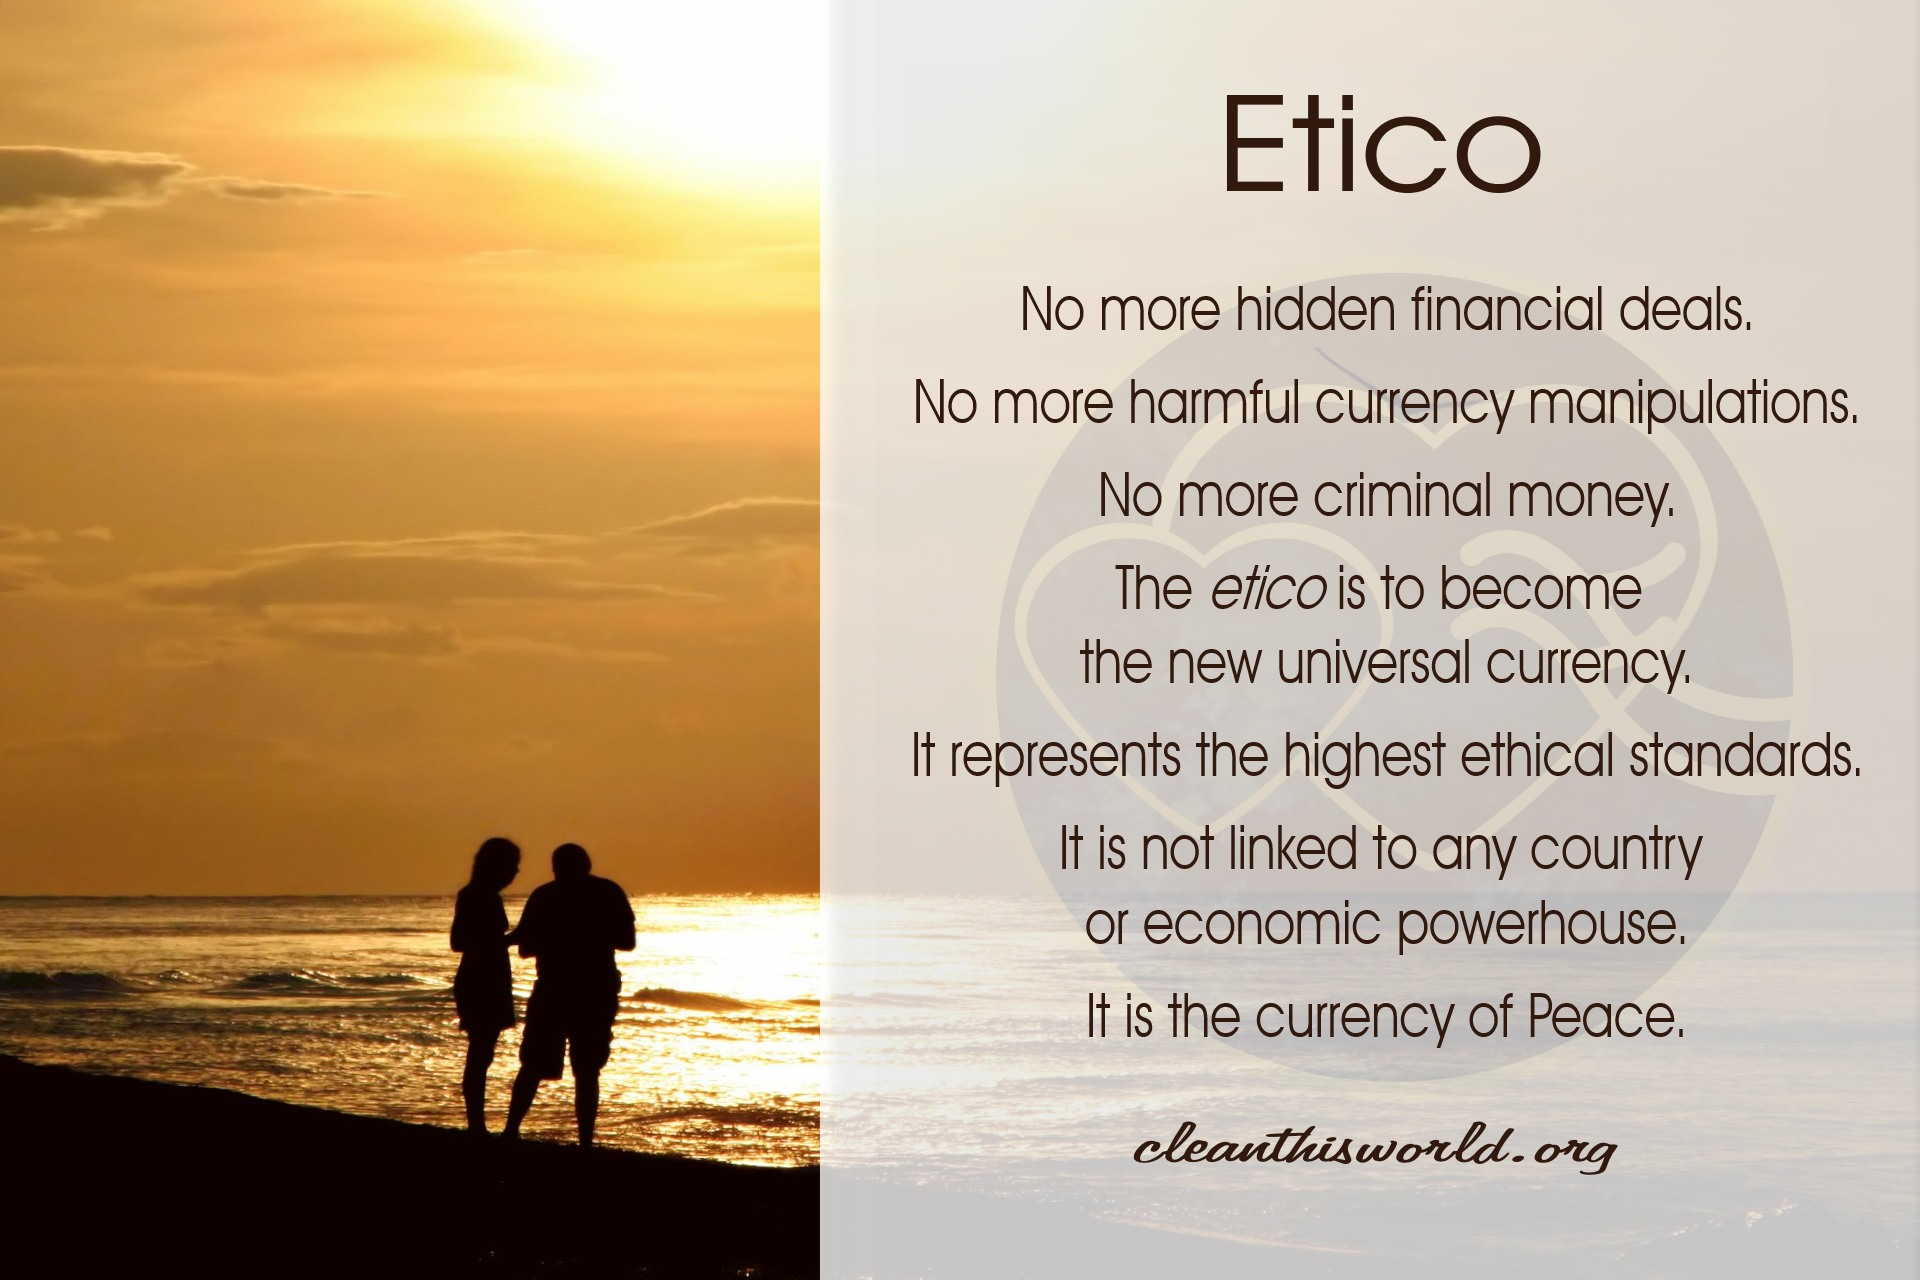 Etico - currency of Peace